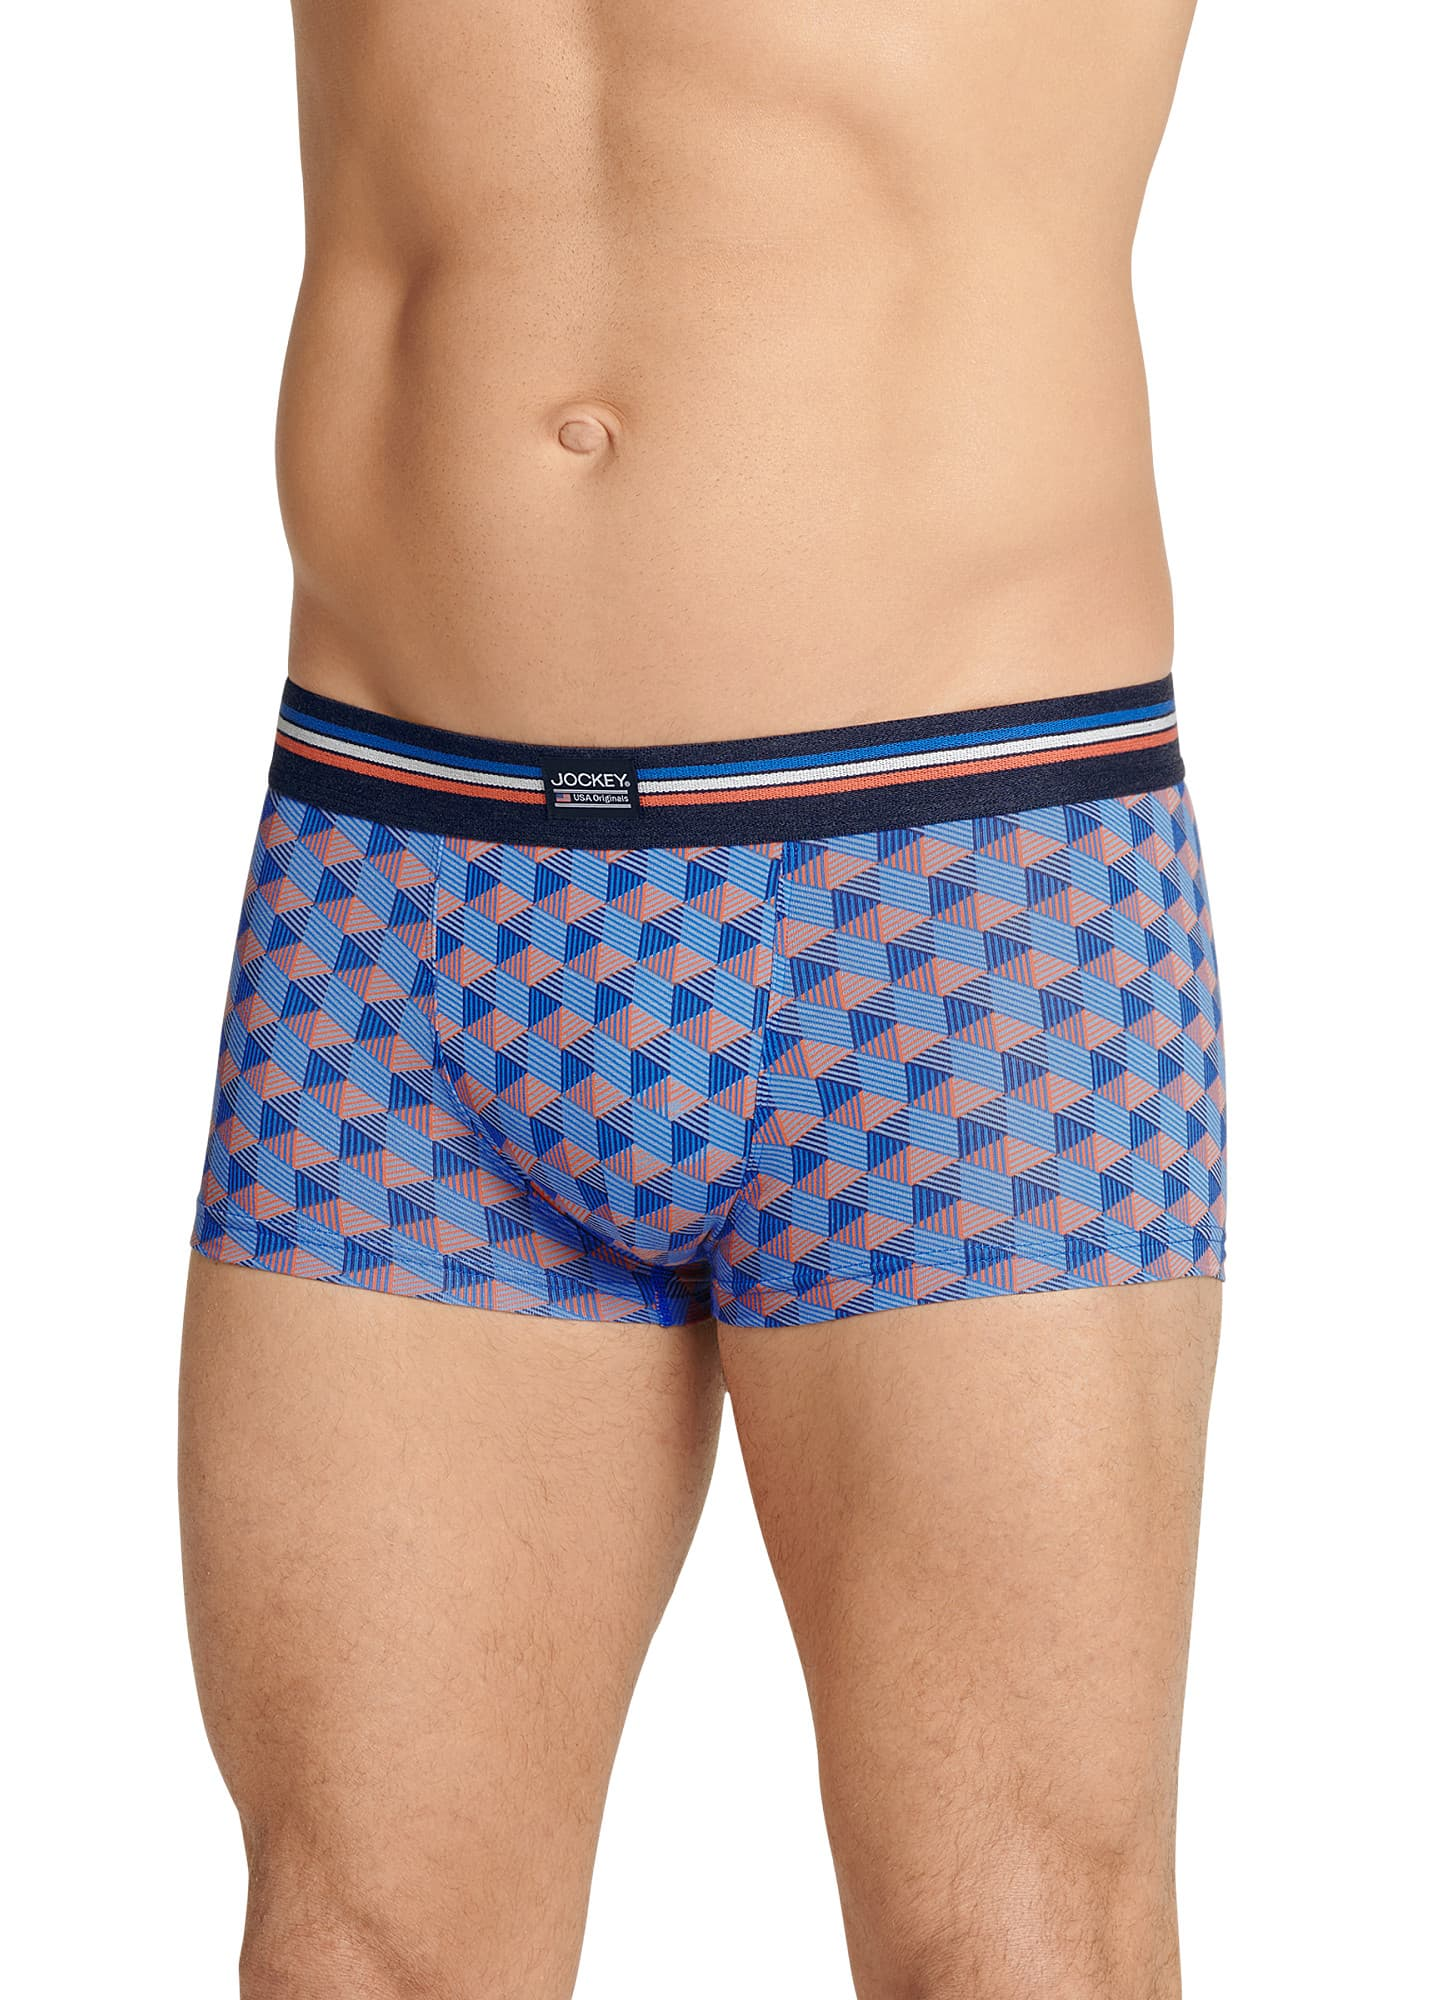 Vans Shoes Sale Online JOCKEY ACTIVE 3 PACK - Briefs white Men Clothing Underwear,Factory Outlet,discount shop [Jockey ] - Jockey Clothing Underwear, JOCKEY ACTIVE 3 PACK - Briefs white Men Clothing Underwear,Factory Outlet,discount shop Material & care Outer fabric material% cotton Washing instructions:Machine wash at 40°C Details.